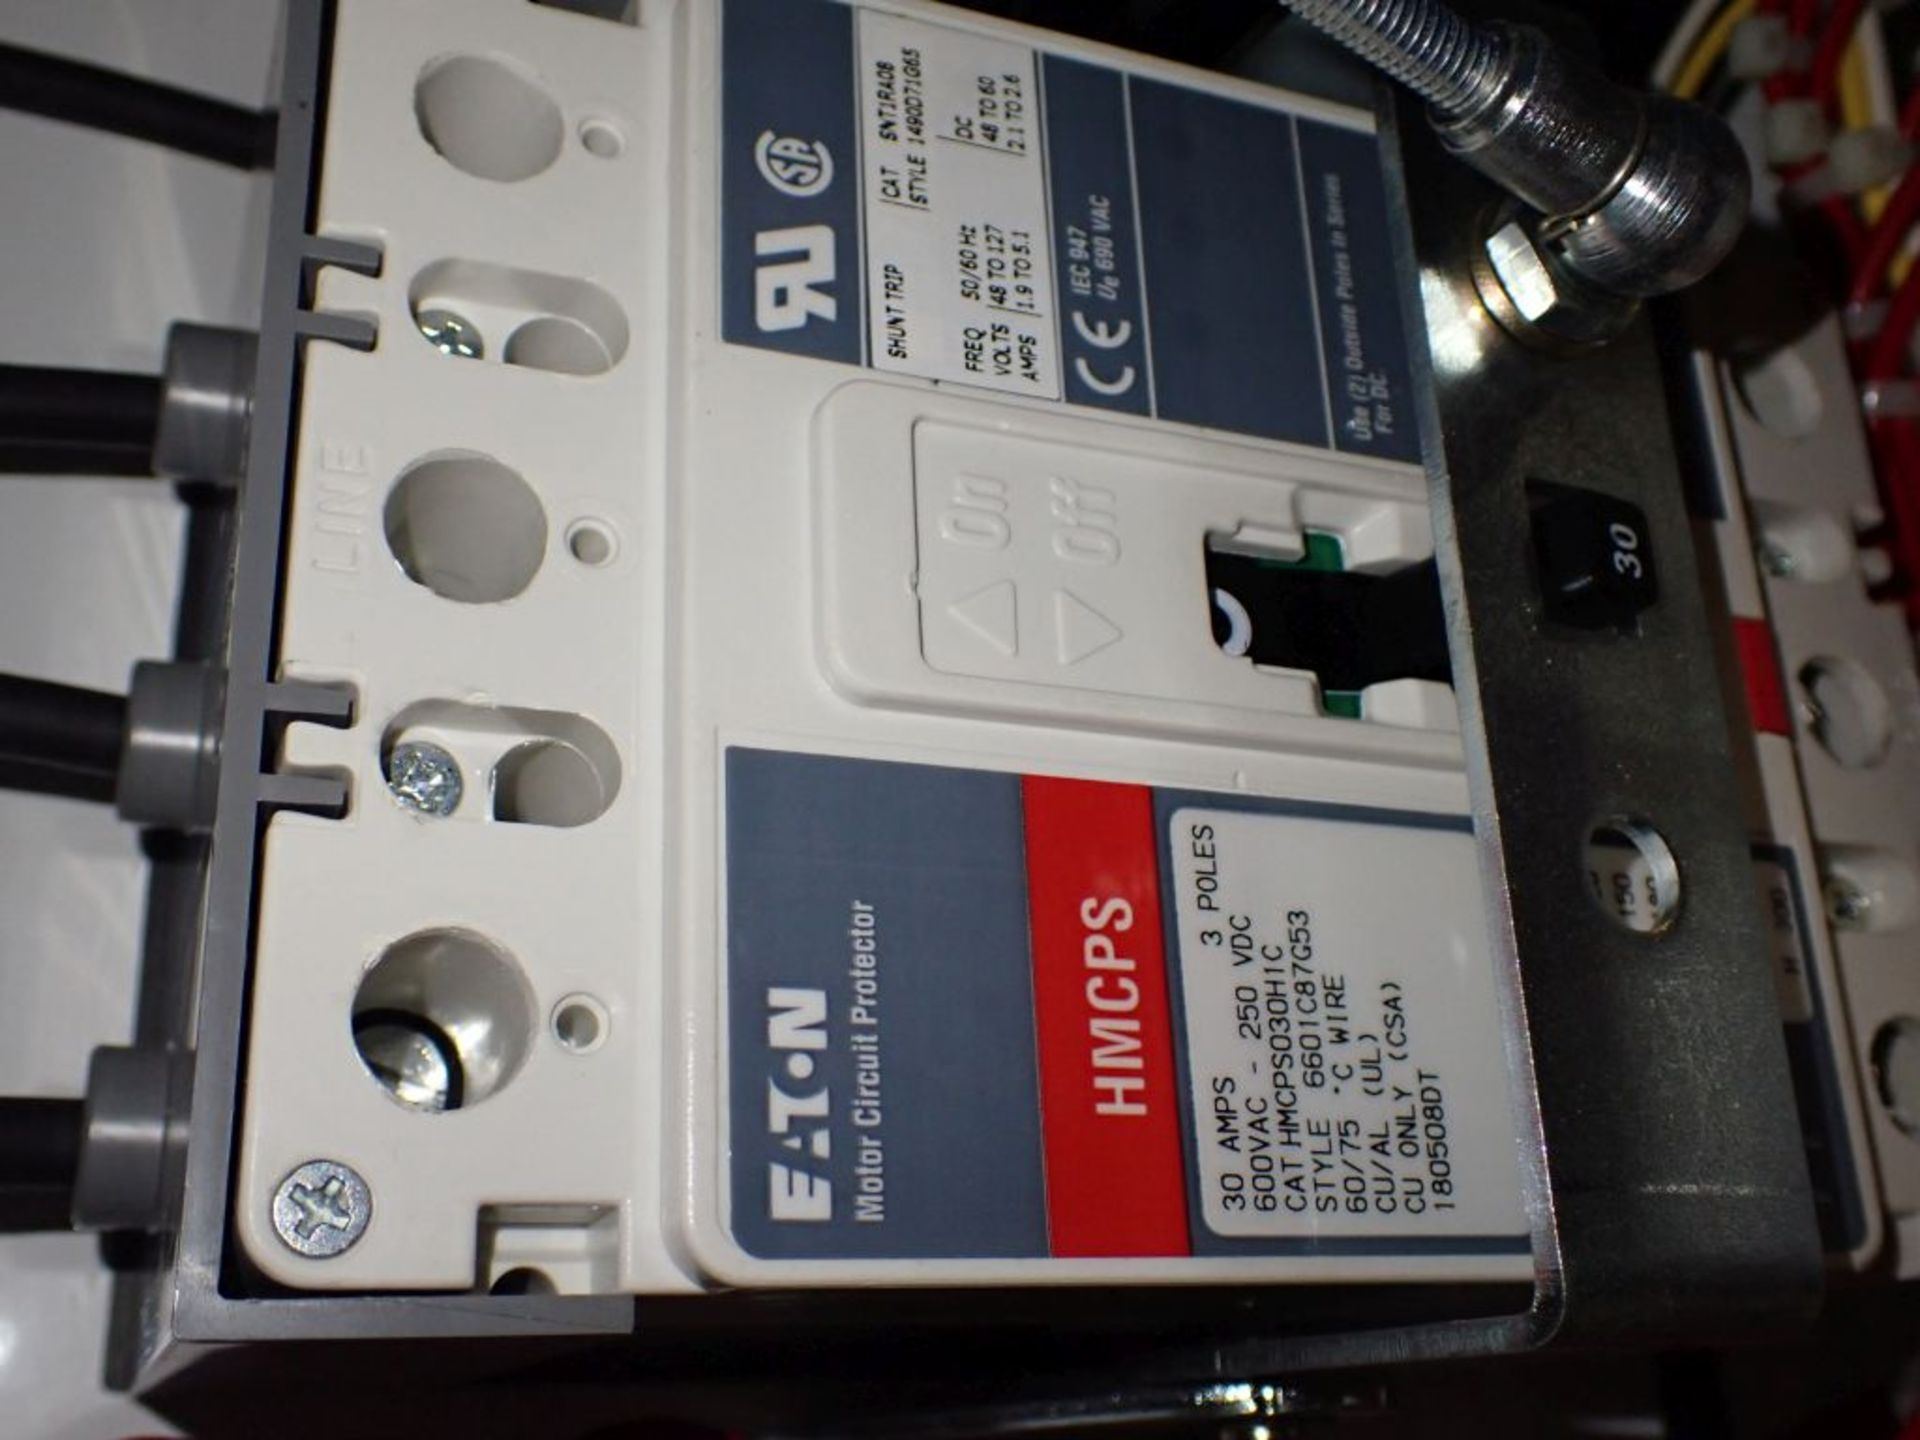 Eaton Freedom 2100 Series Motor Control Center | (11) F206-30A-10HP; (5) F206-15A-10HP; (1) SVX900- - Image 30 of 102